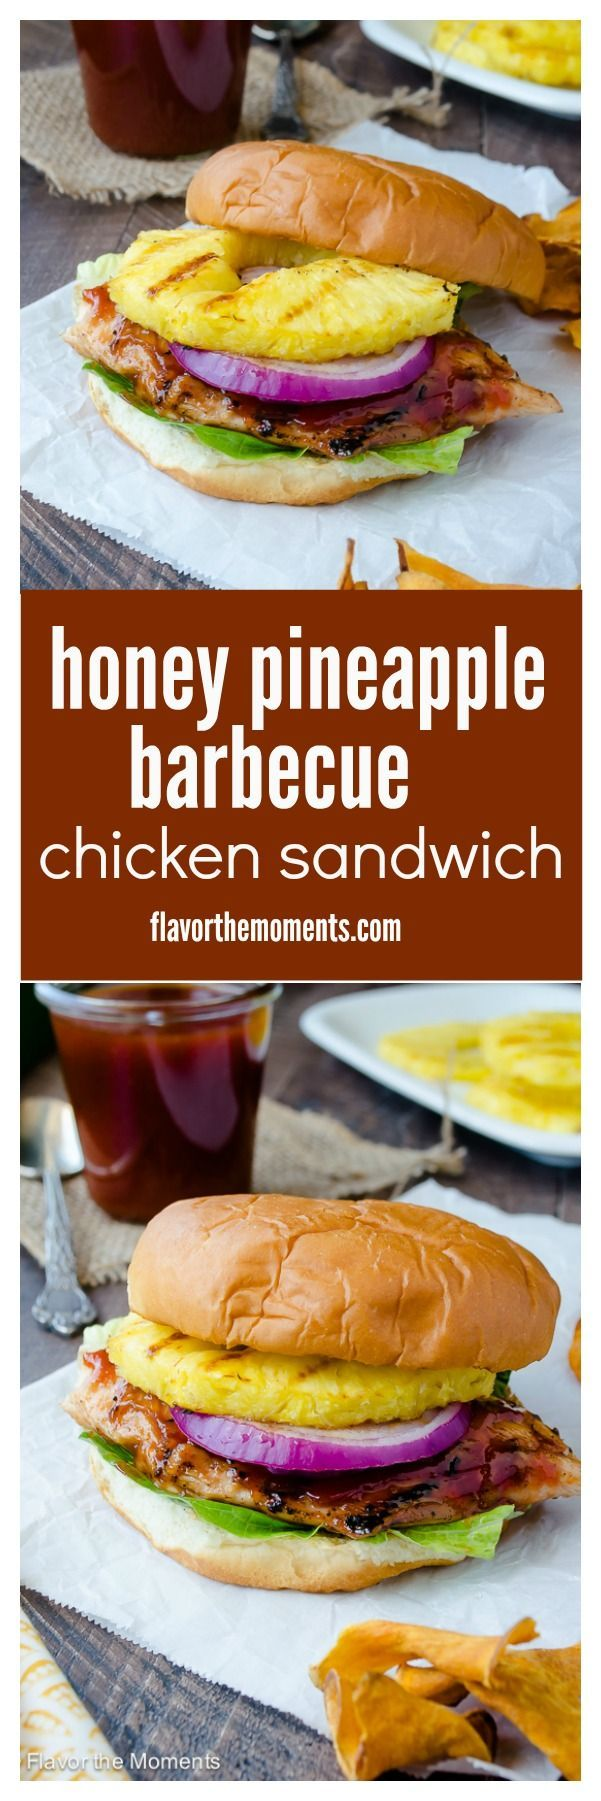 758 Best images about Chicken ideas on Pinterest | Skewers ...